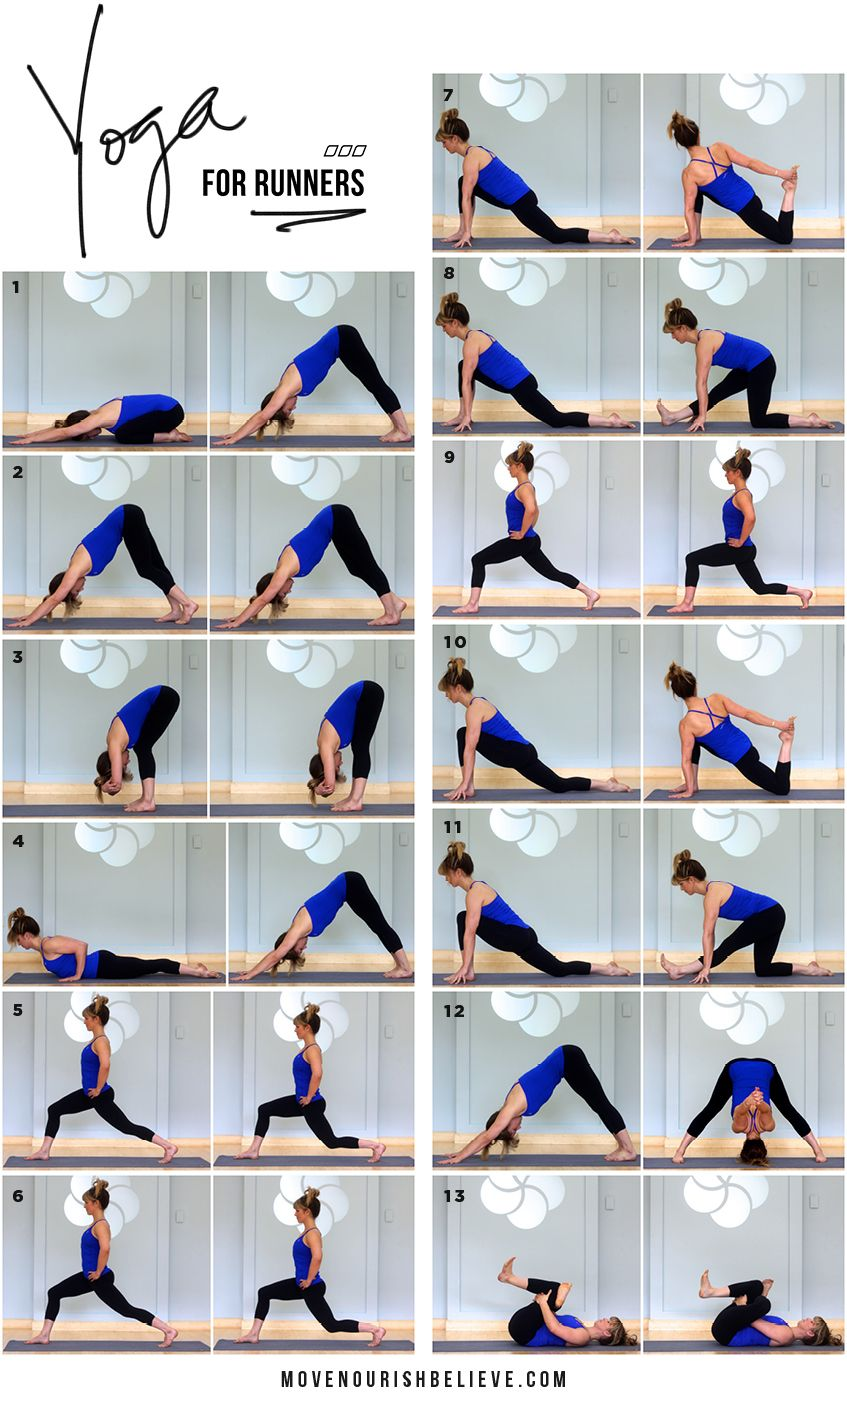 Watch Yoga Stretches for Runners video